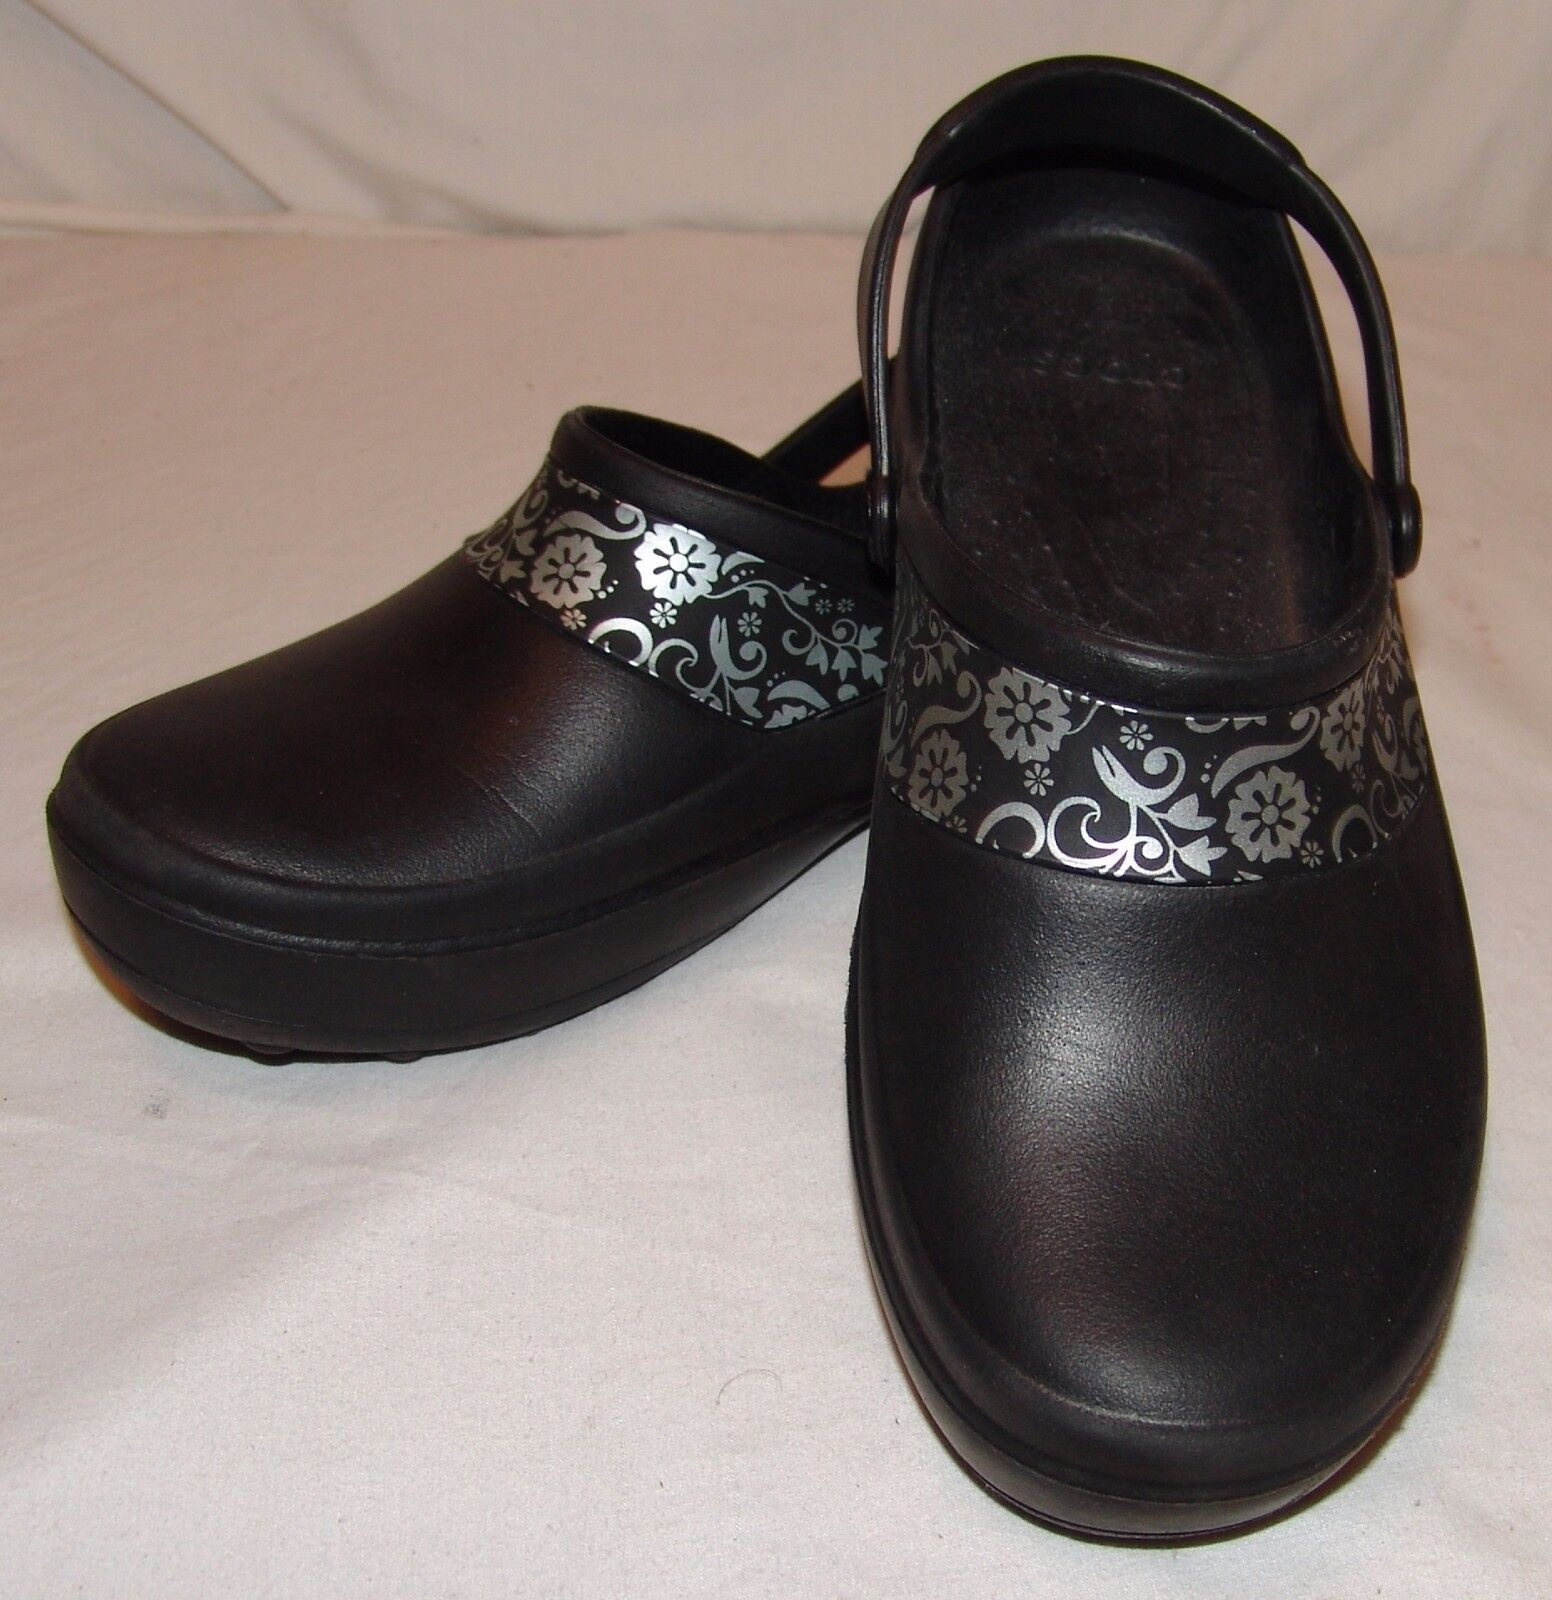 Crocs Womens 6 shoes Black Silver Floral Print Clogs Slingbacks